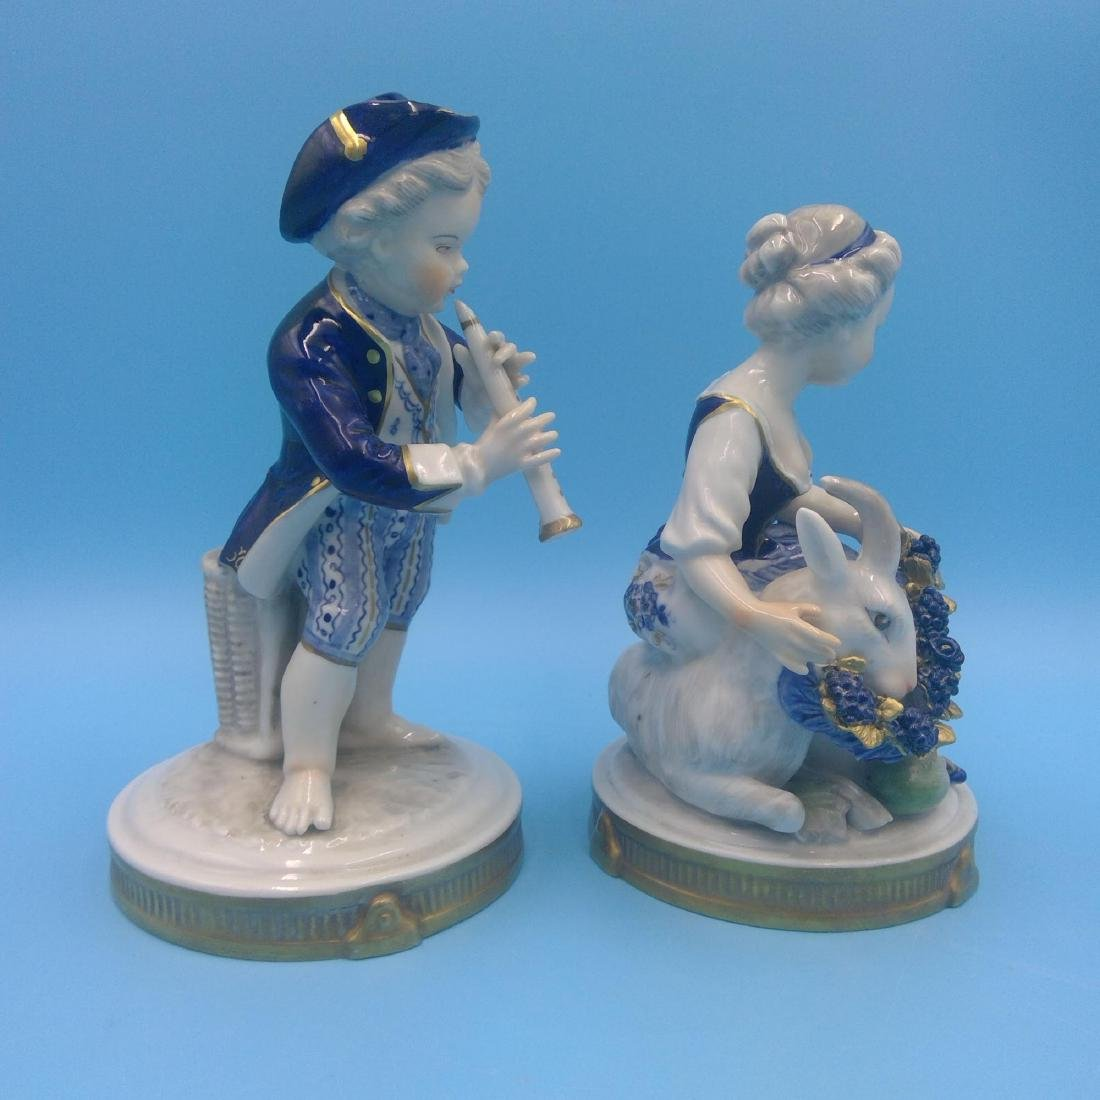 GROUP OF 4 ANTIQUE GERMAN PORCELAIN FIGURINES - 6